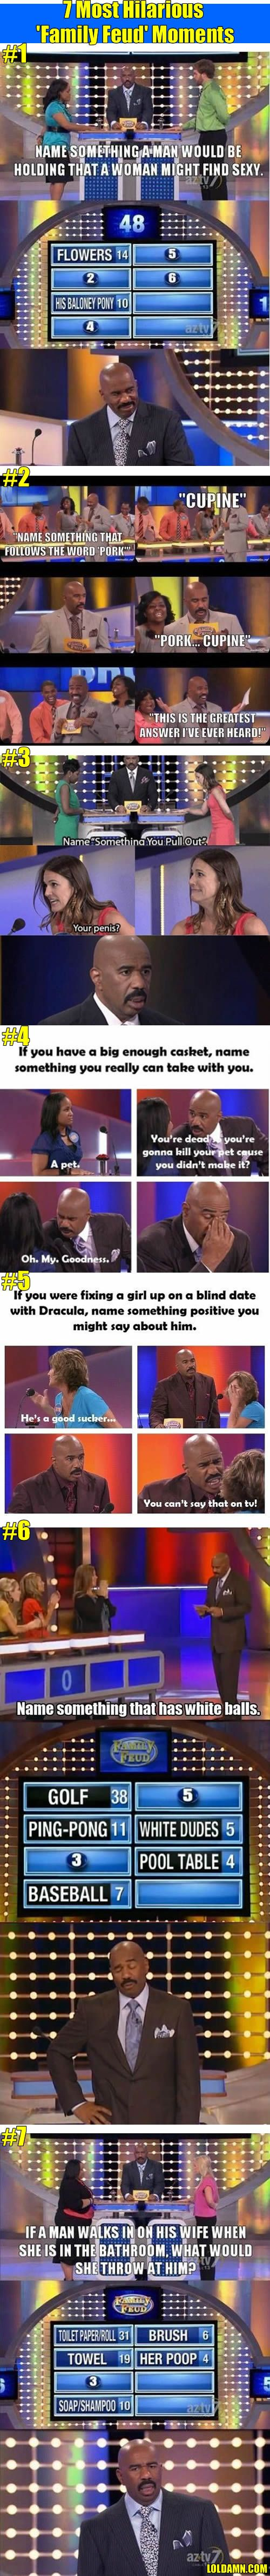 7 Most Hilarious 'Family Feud' Moments. Love Steve Harvey!!'